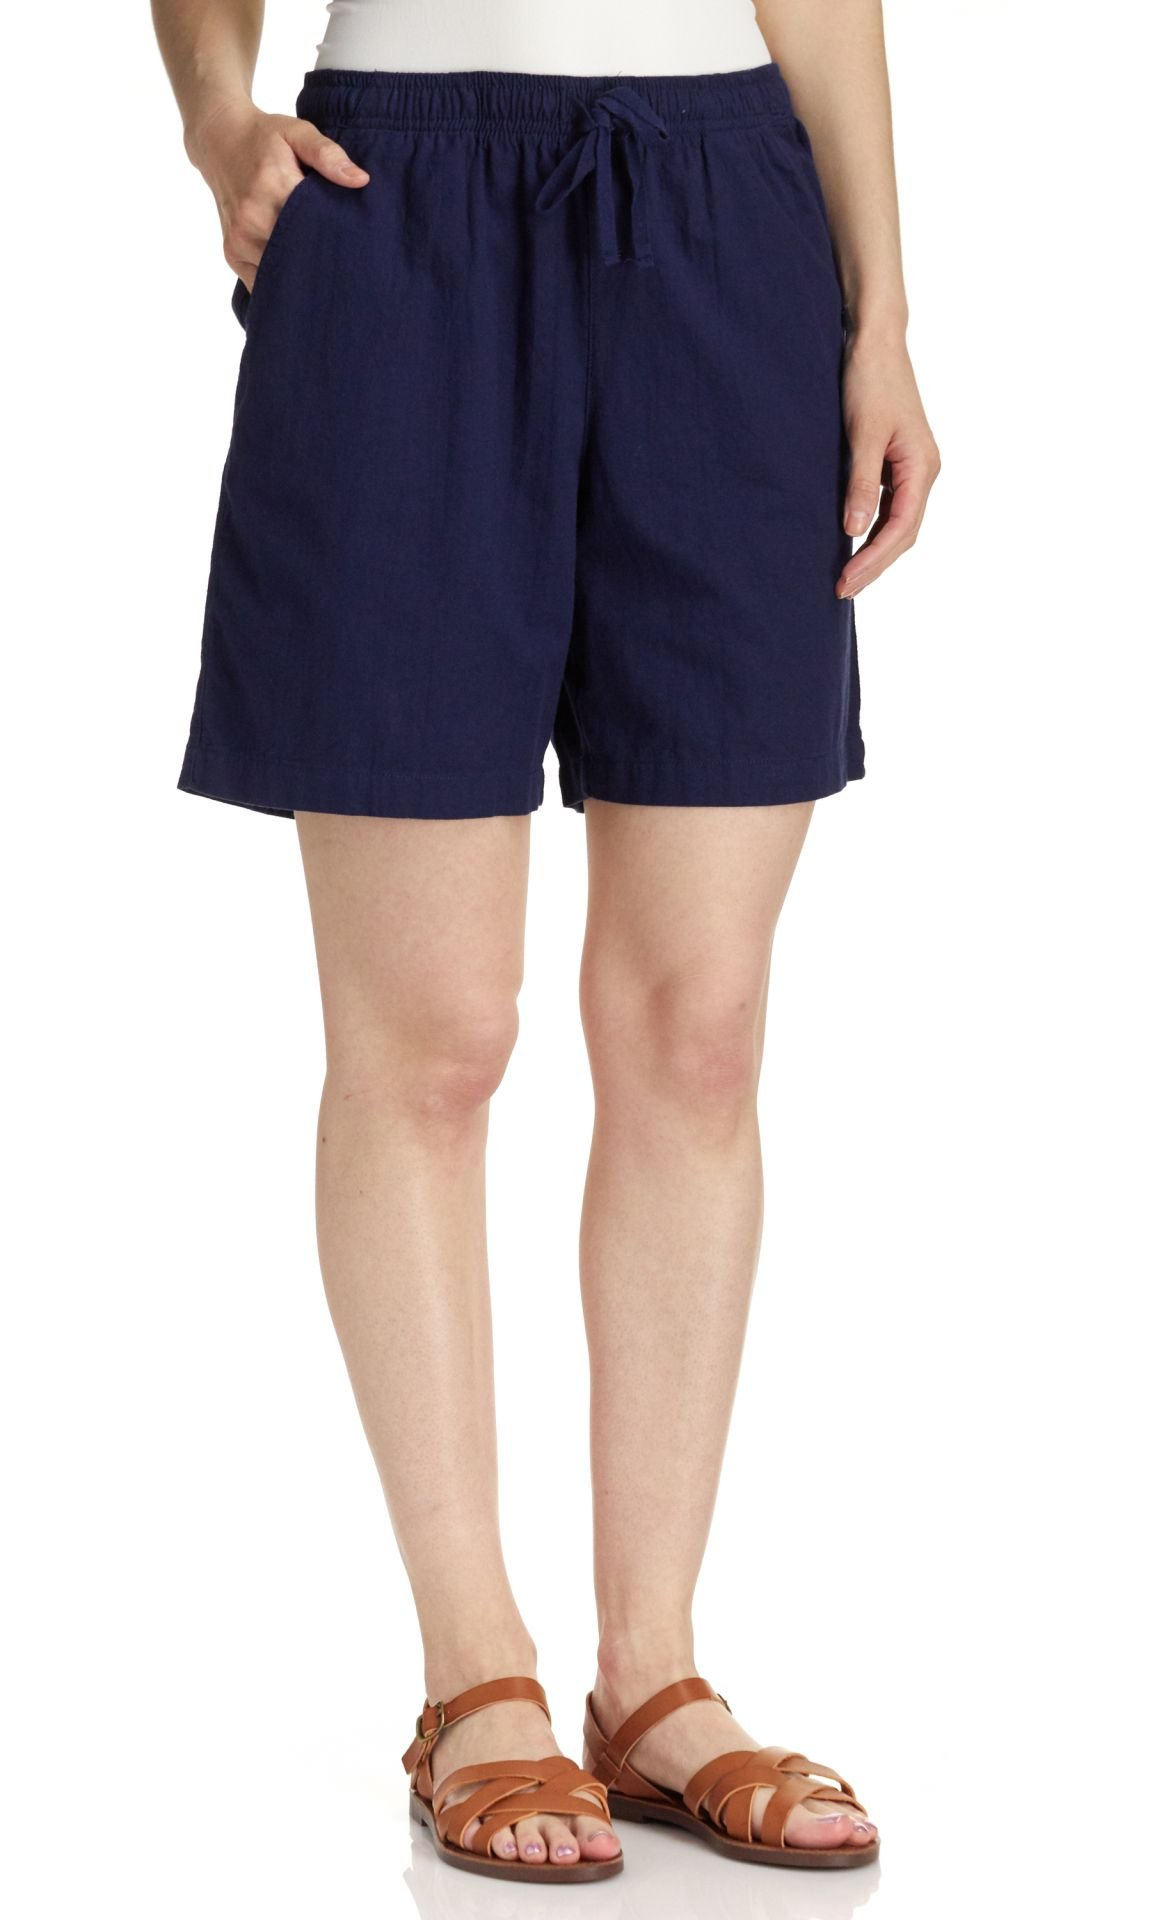 Erika Lucy Gds Shorts, Club Navy, Small